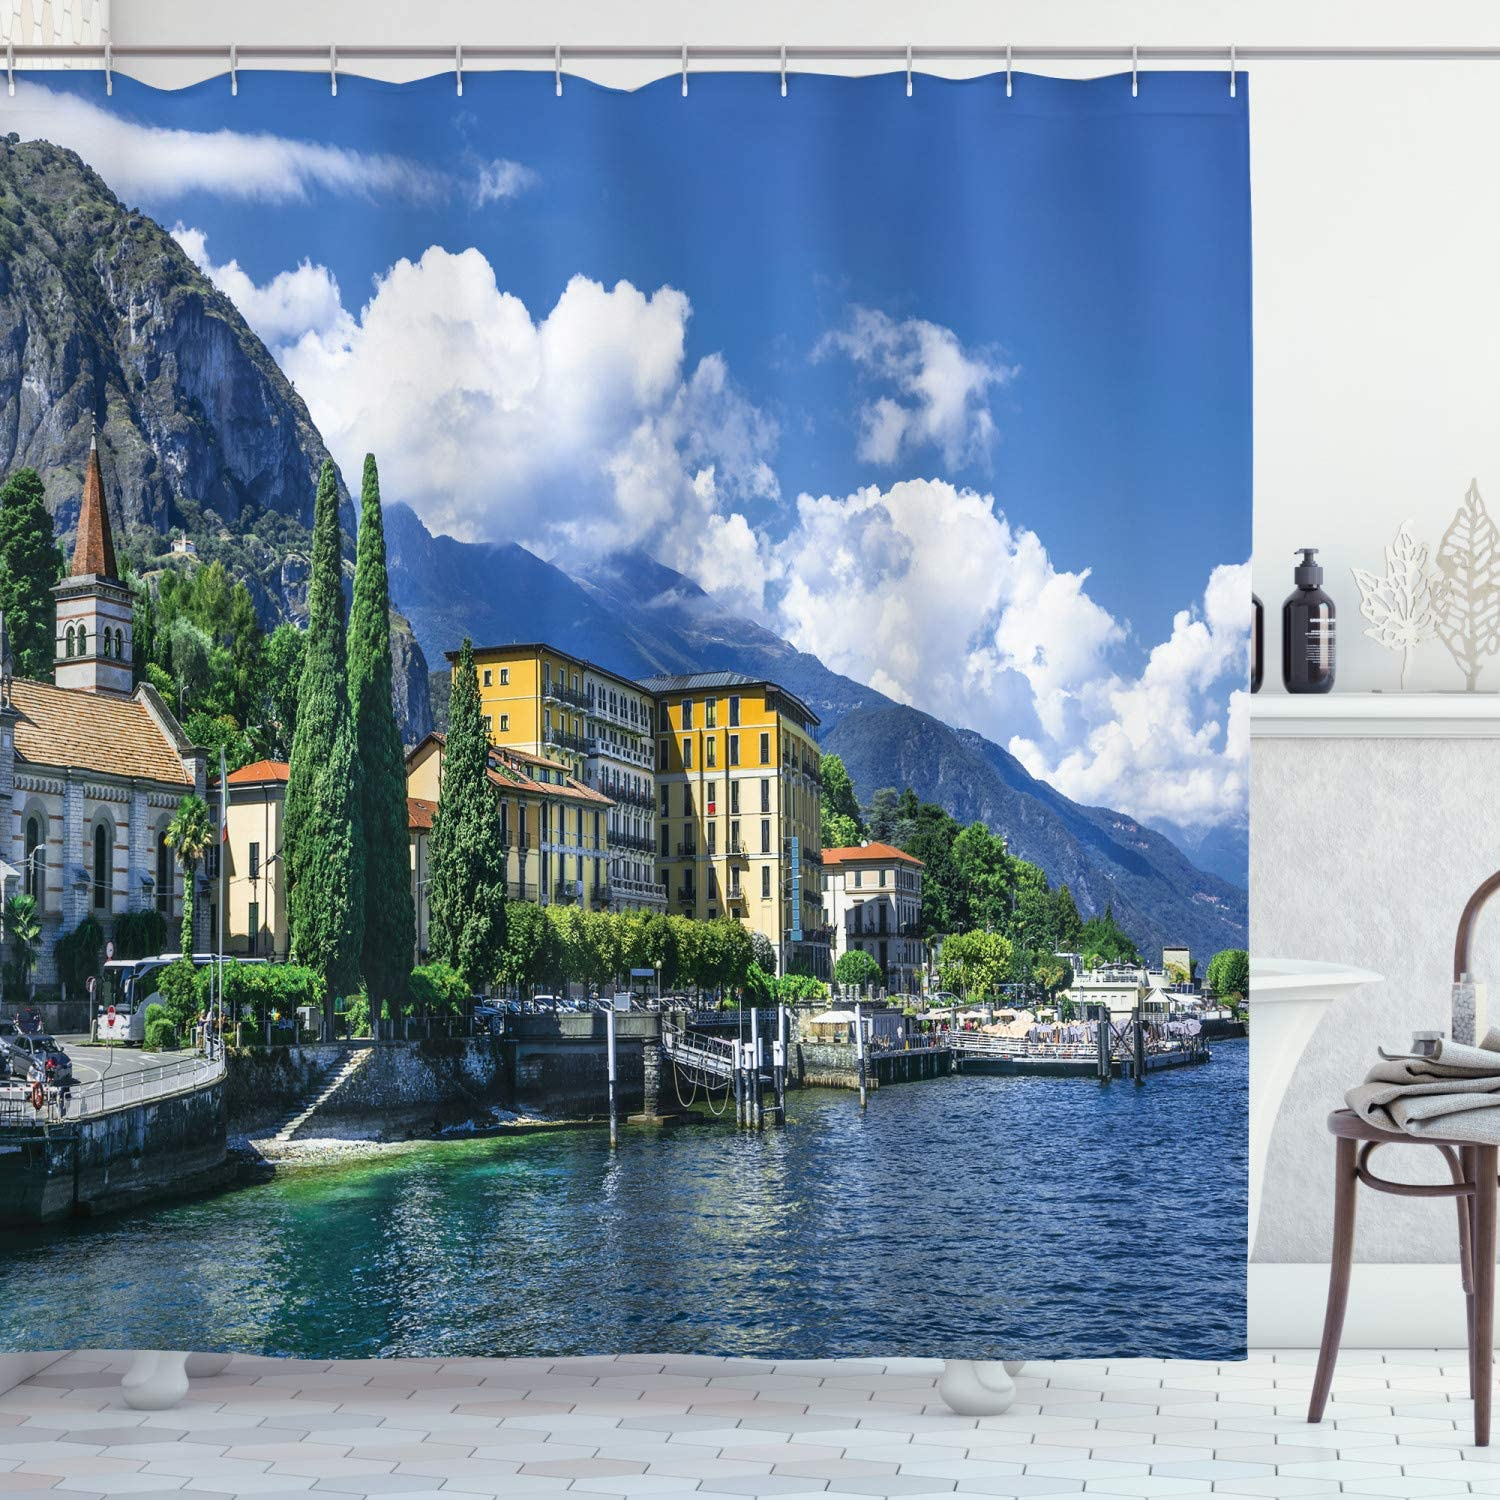 Italy Decor Shower Curtain By Ambesonne The Panoramic Landscape Of Lake Como Mountains And Clouds Digital Image Fabric Bathroom Decor Set With Hooks 70 Inches Blue And Green Amazon Co Uk Kitchen Home